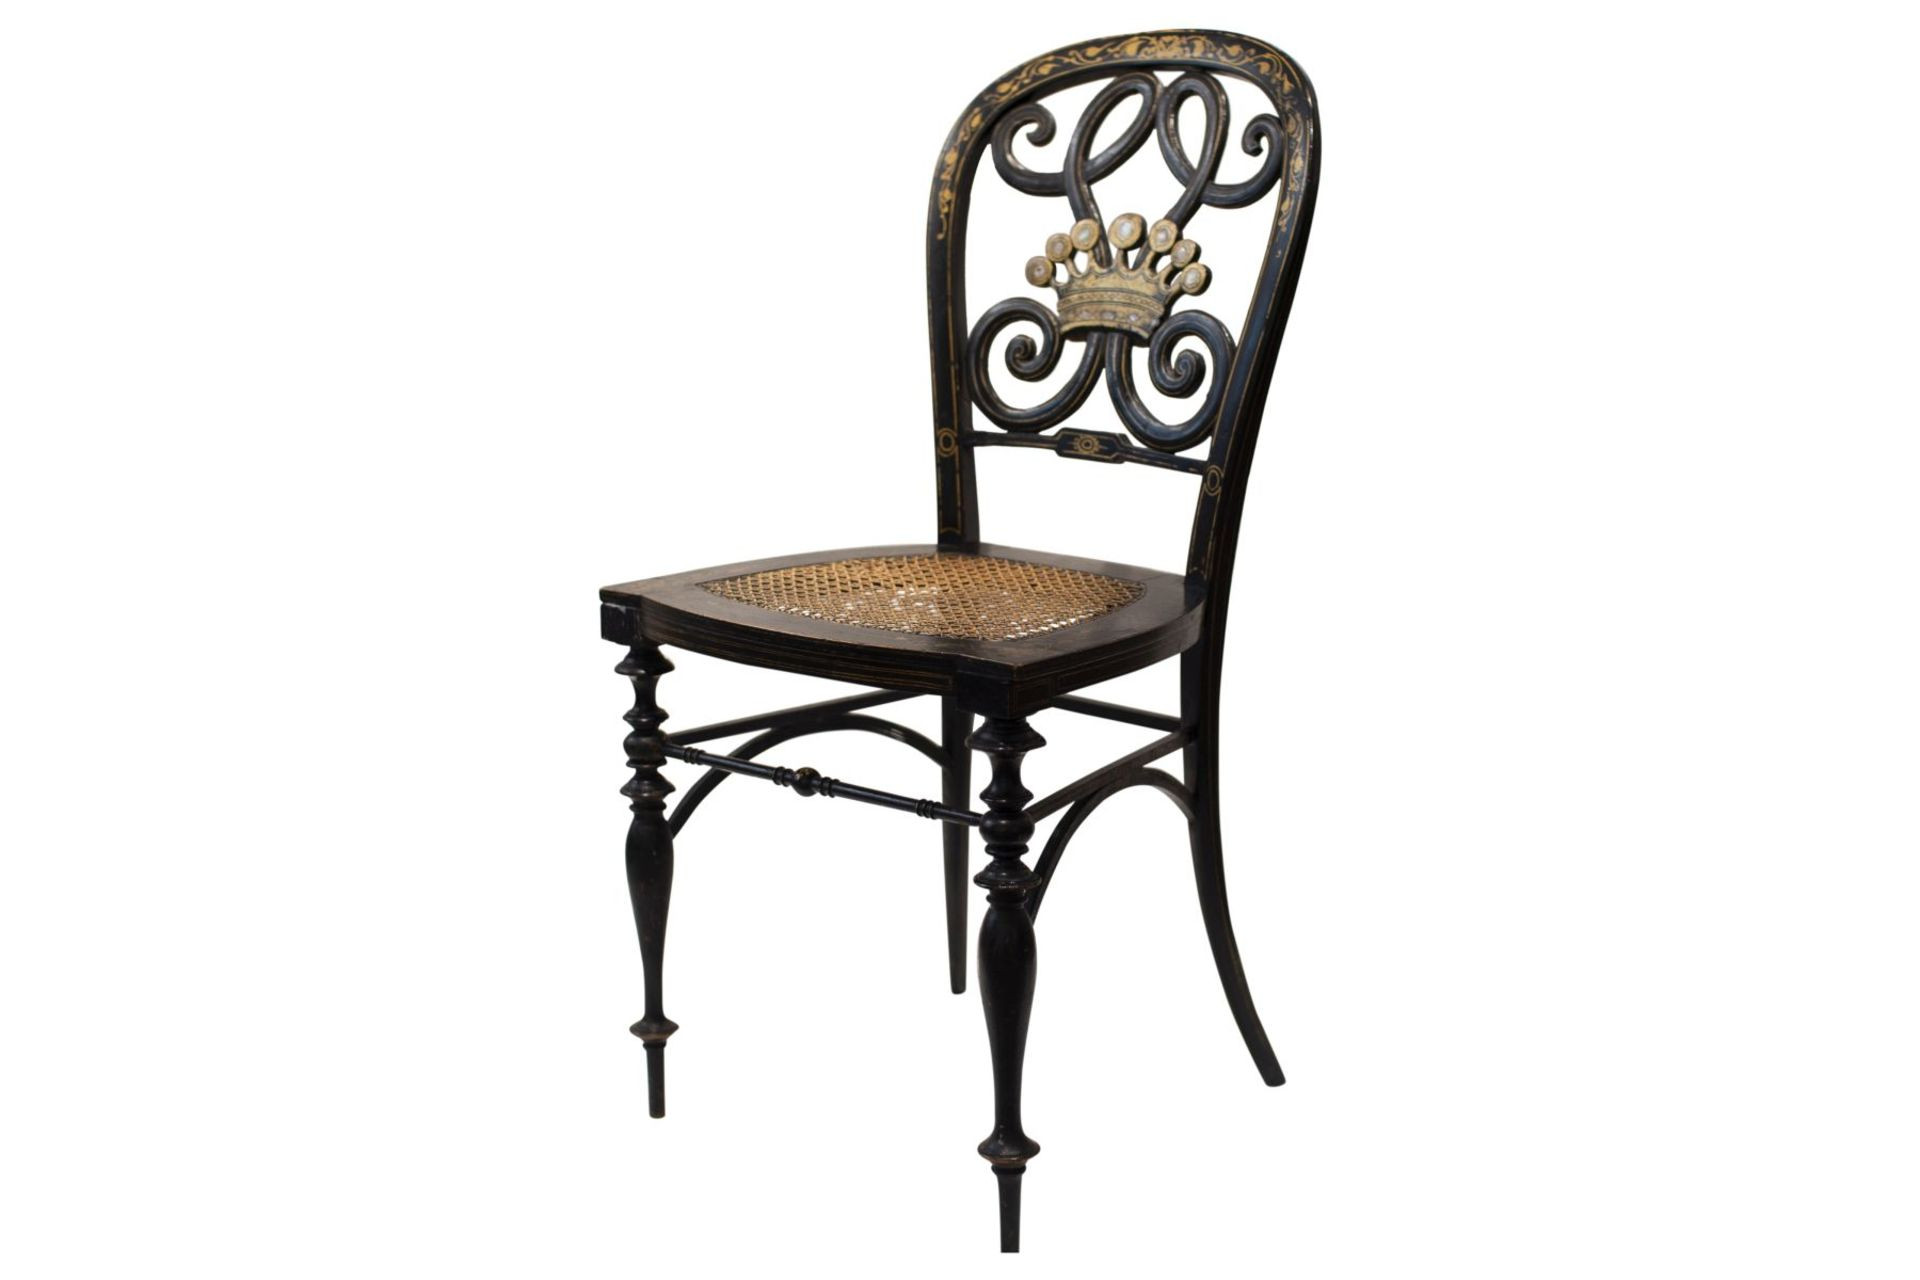 Decorative chair, French Chinoiserie - Image 7 of 7